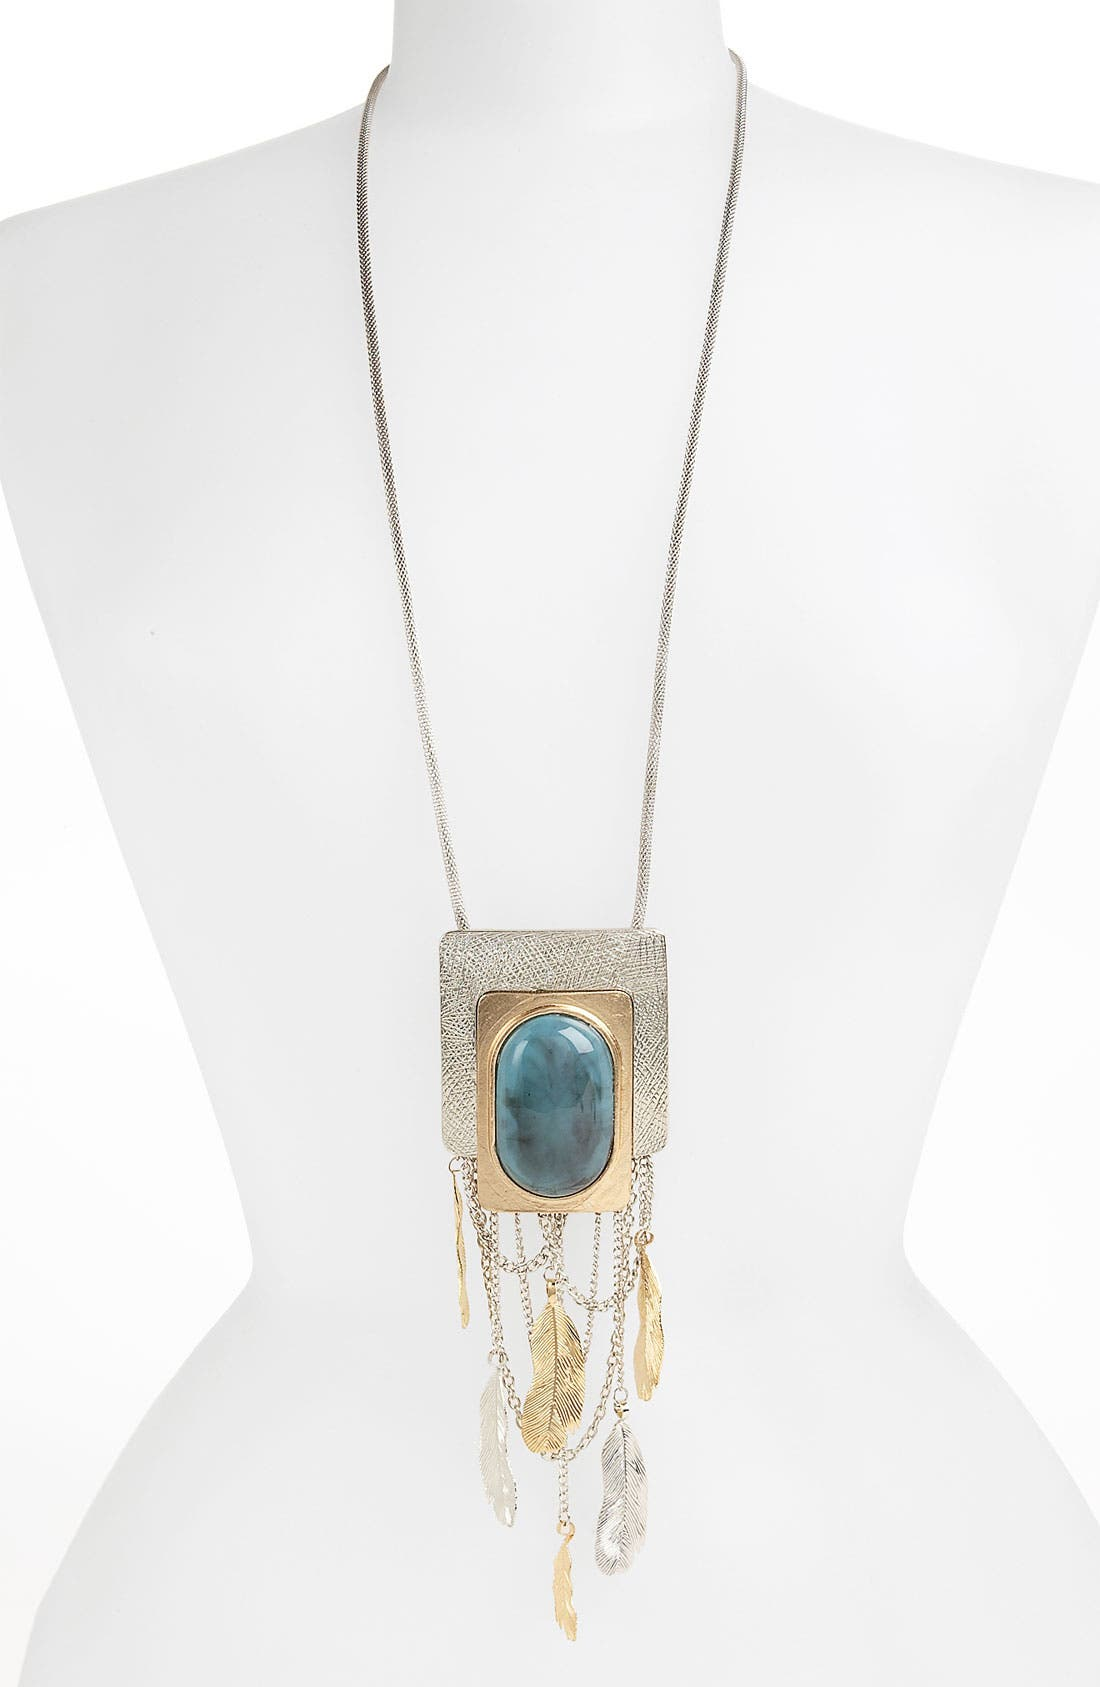 Alternate Image 1 Selected - Natasha Couture 'Deco Hippie' Pendant Necklace